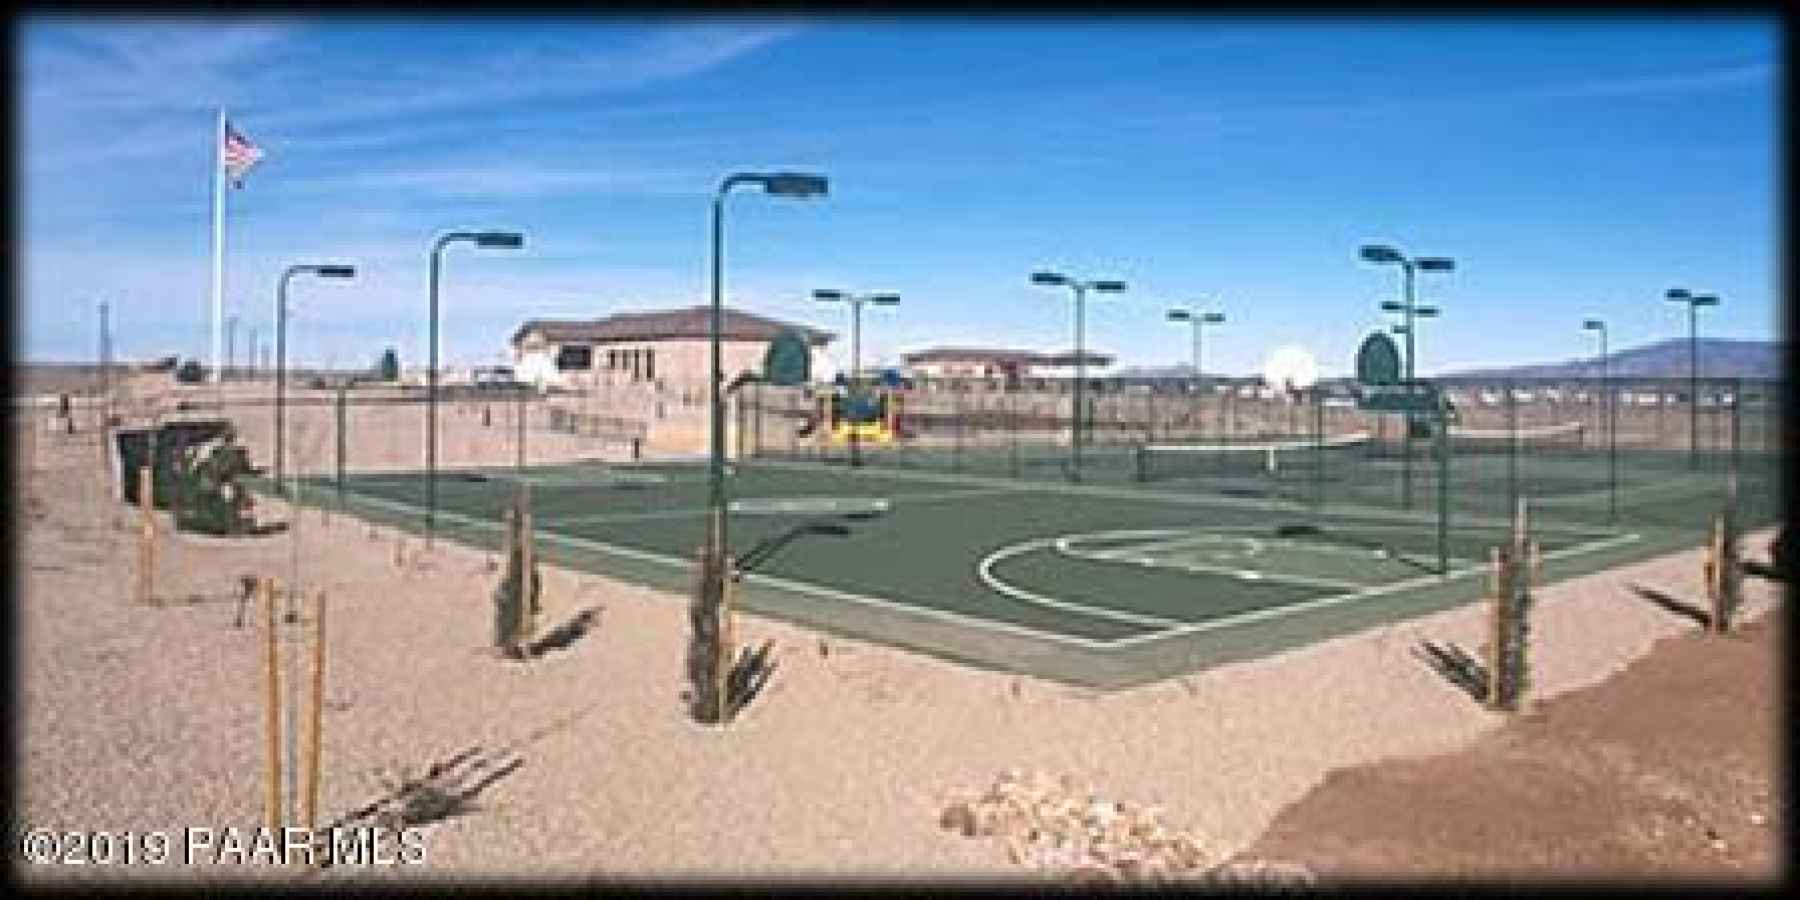 TennisAndBasketballCourts